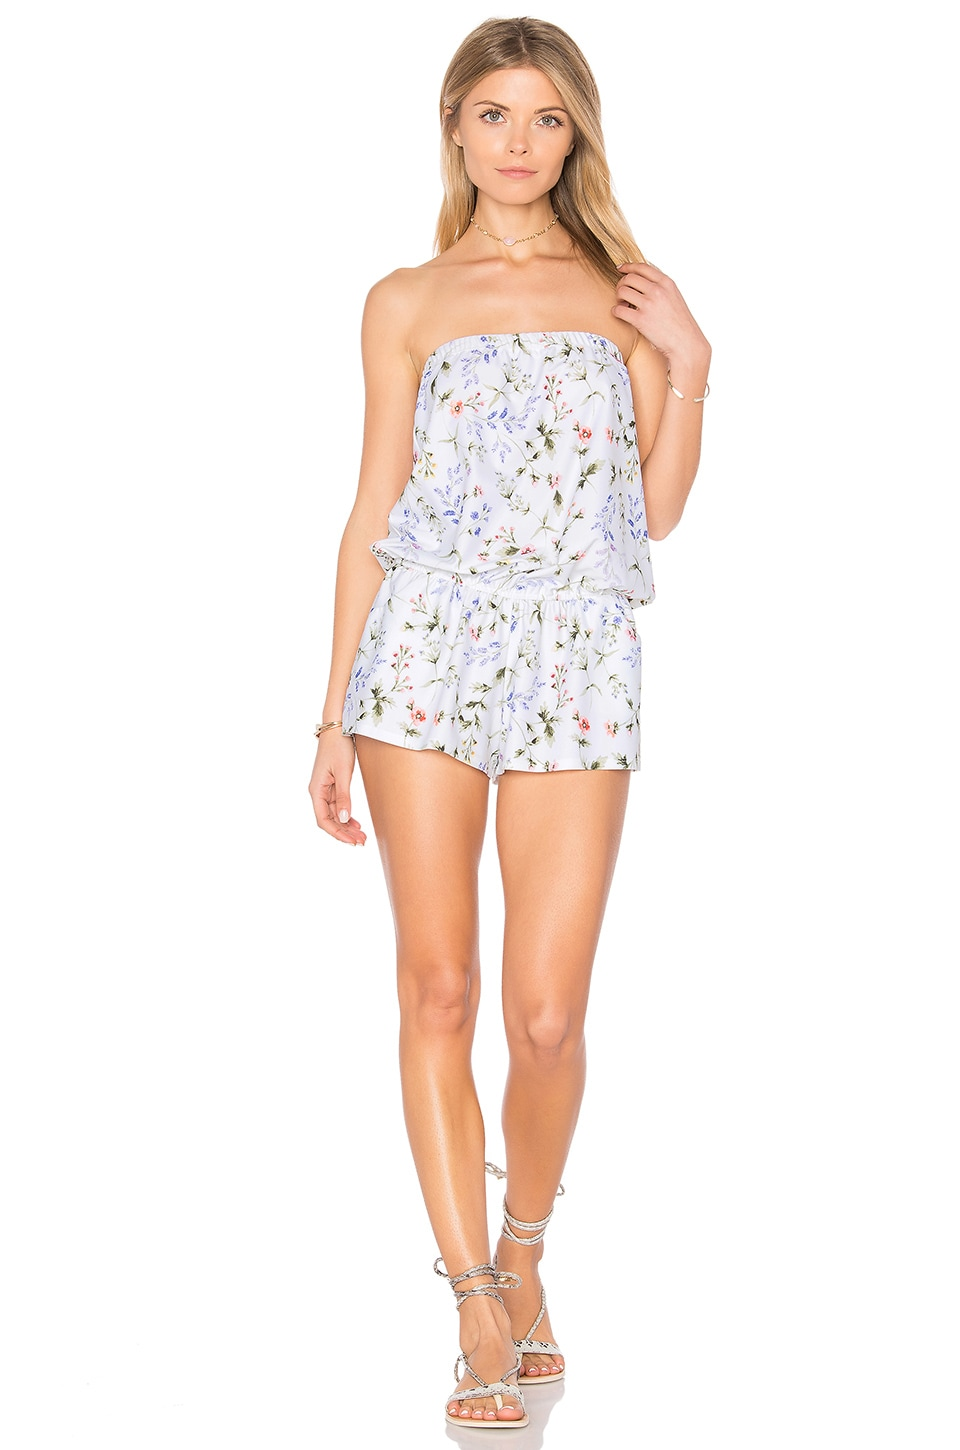 Botanical Floral Strapless Romper by Shoshanna